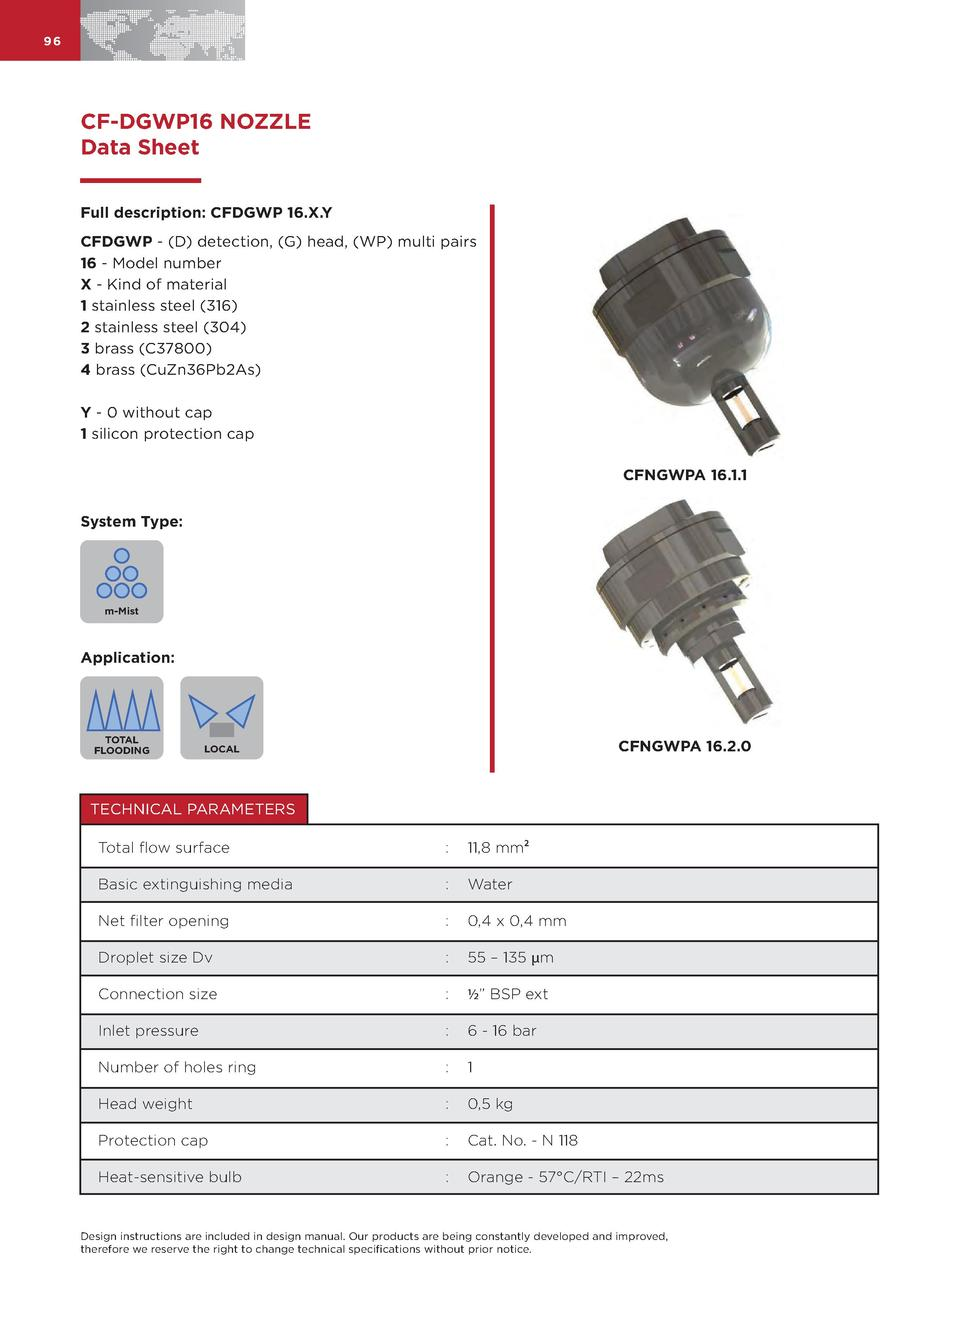 96  CF-DGWP16 NOZZLE Data Sheet Full description  CFDGWP 16.X.Y CFDGWP -  D  detection,  G  head,  WP  multi pairs 16 - Mo...